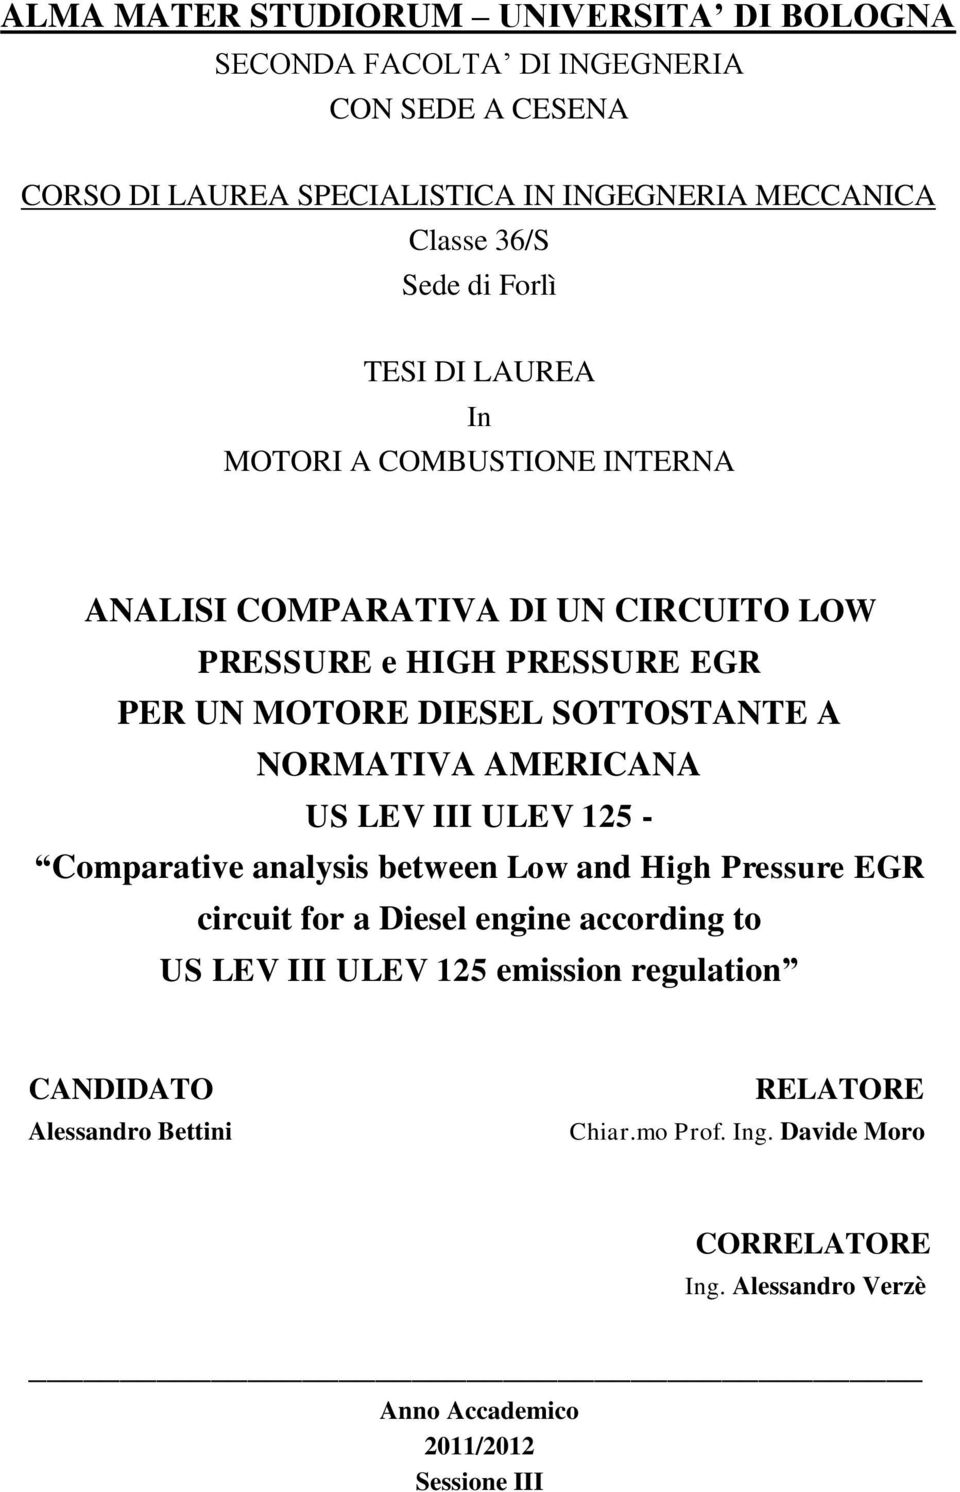 SOTTOSTANTE A NORMATIVA AMERICANA US LEV III ULEV 125 - Comparative analysis between Low and High Pressure EGR circuit for a Diesel engine according to US LEV